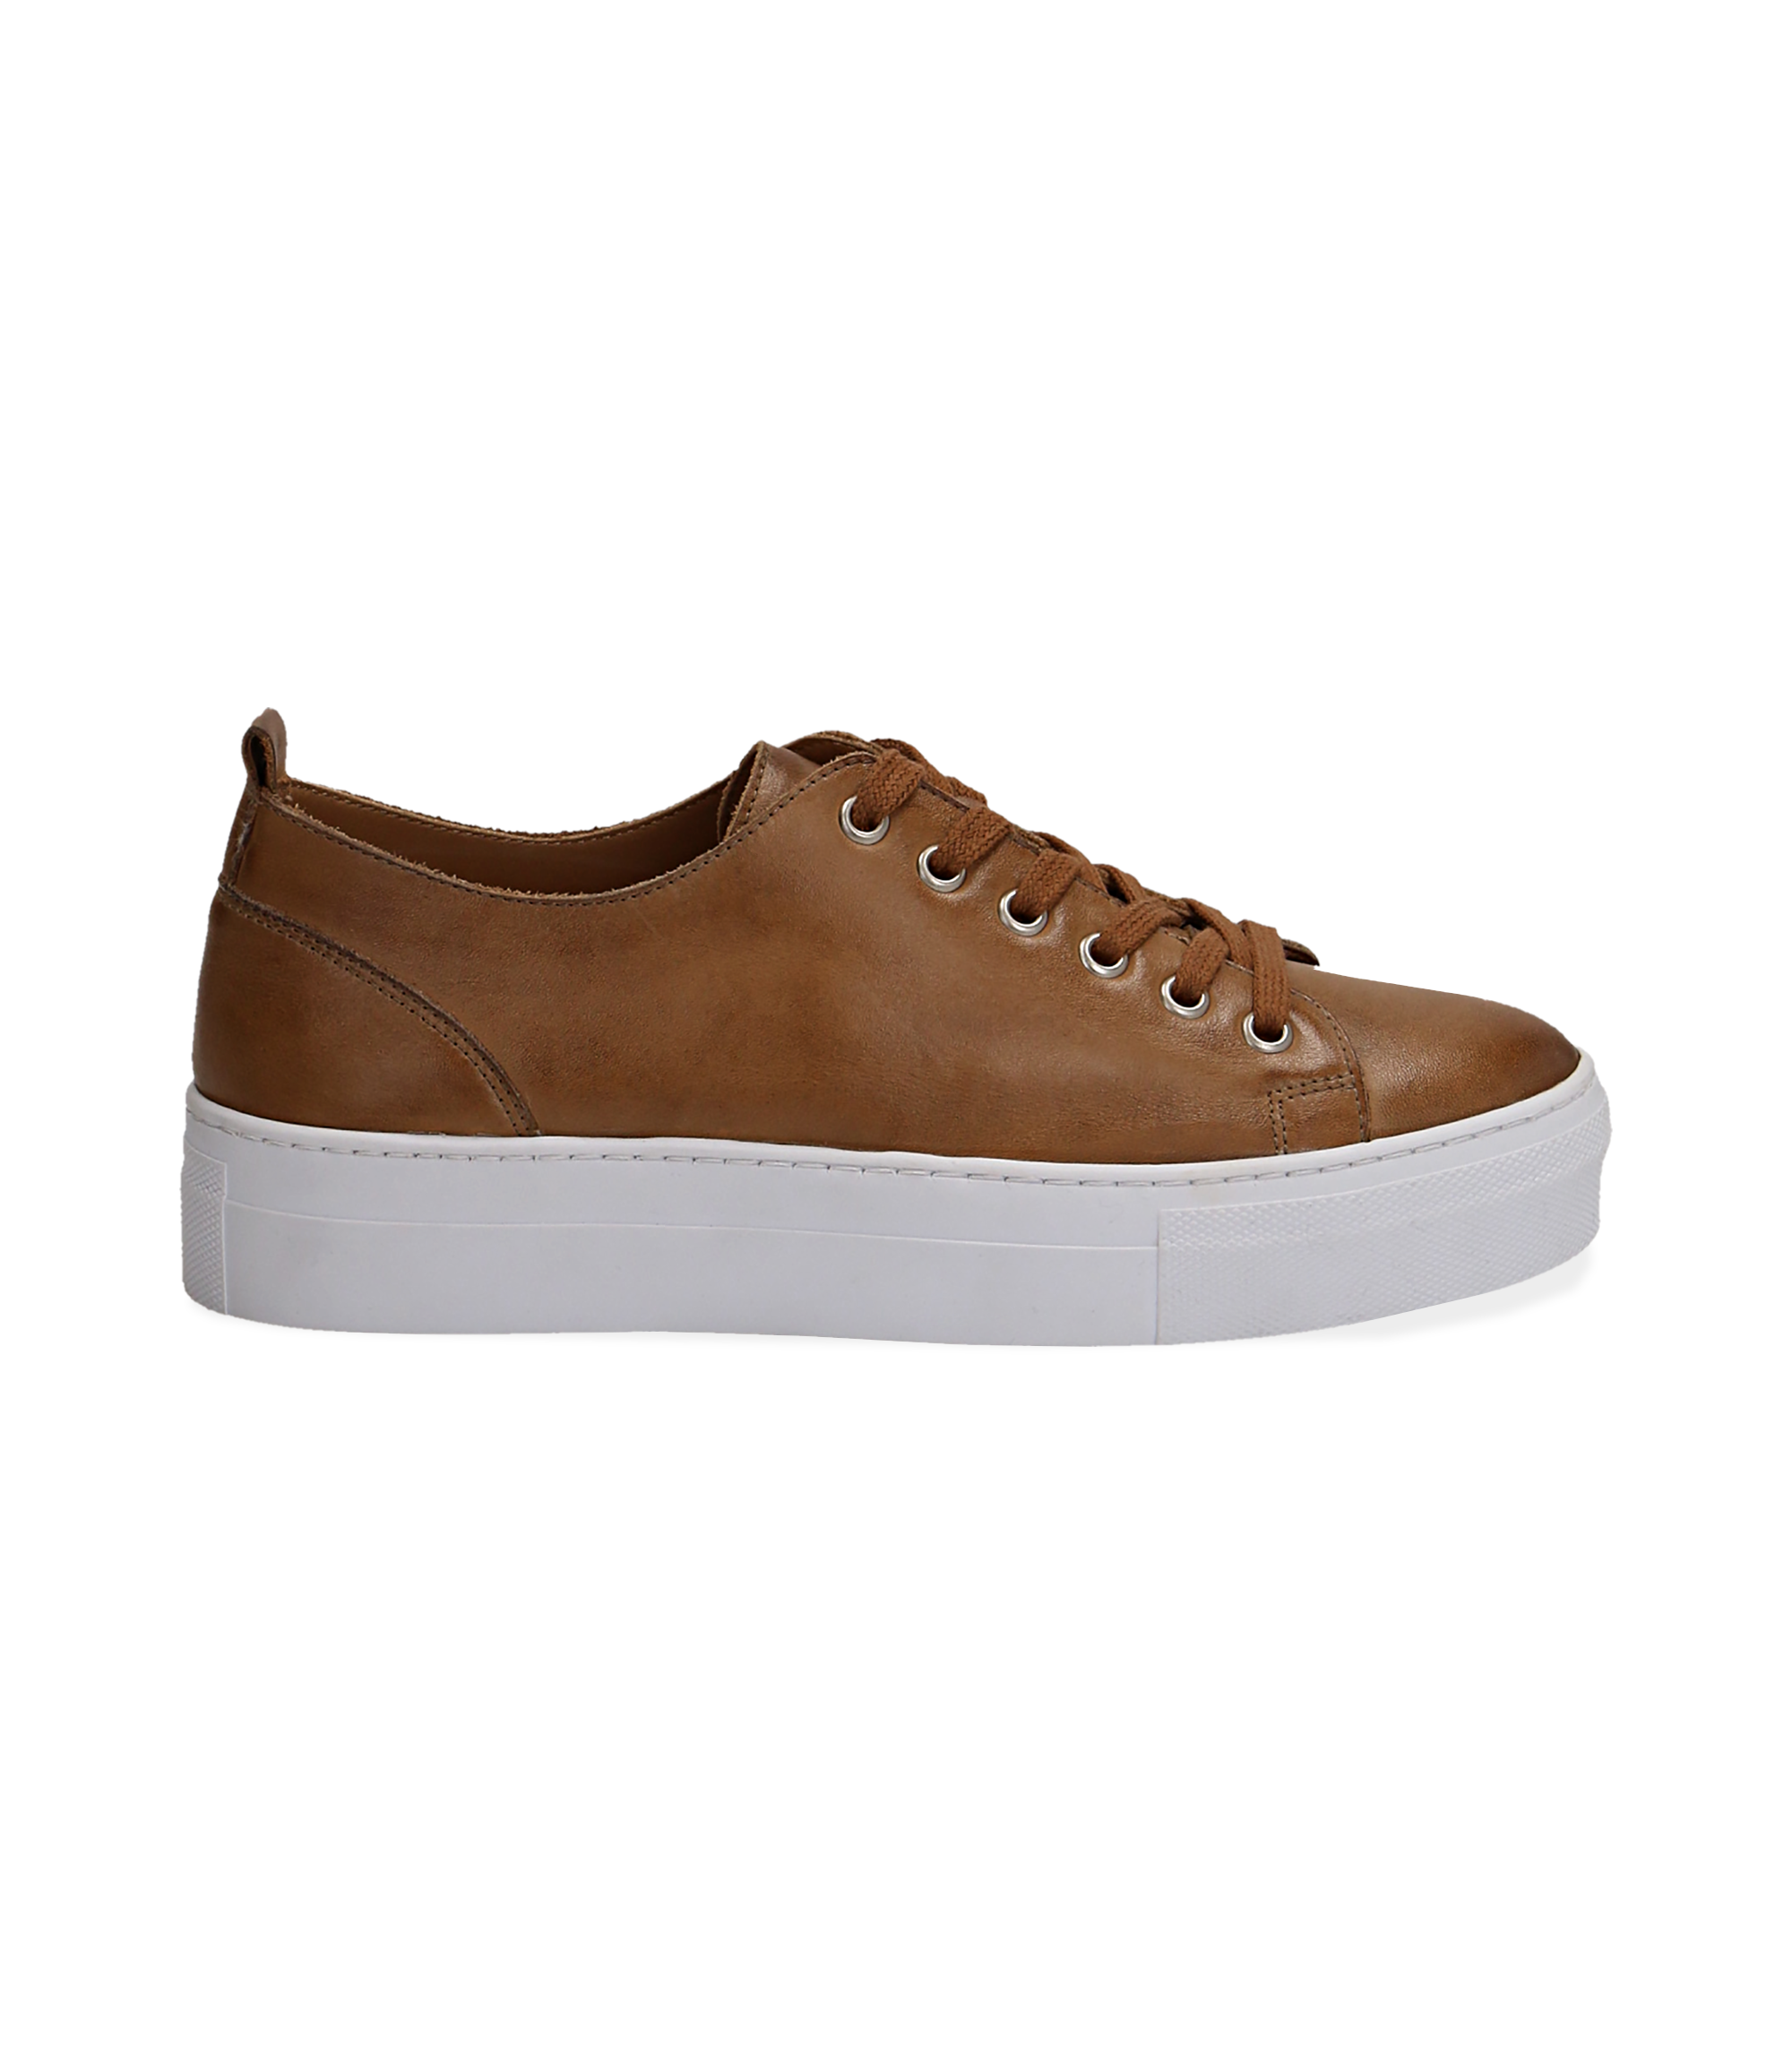 Sneakers cuoio in pelle